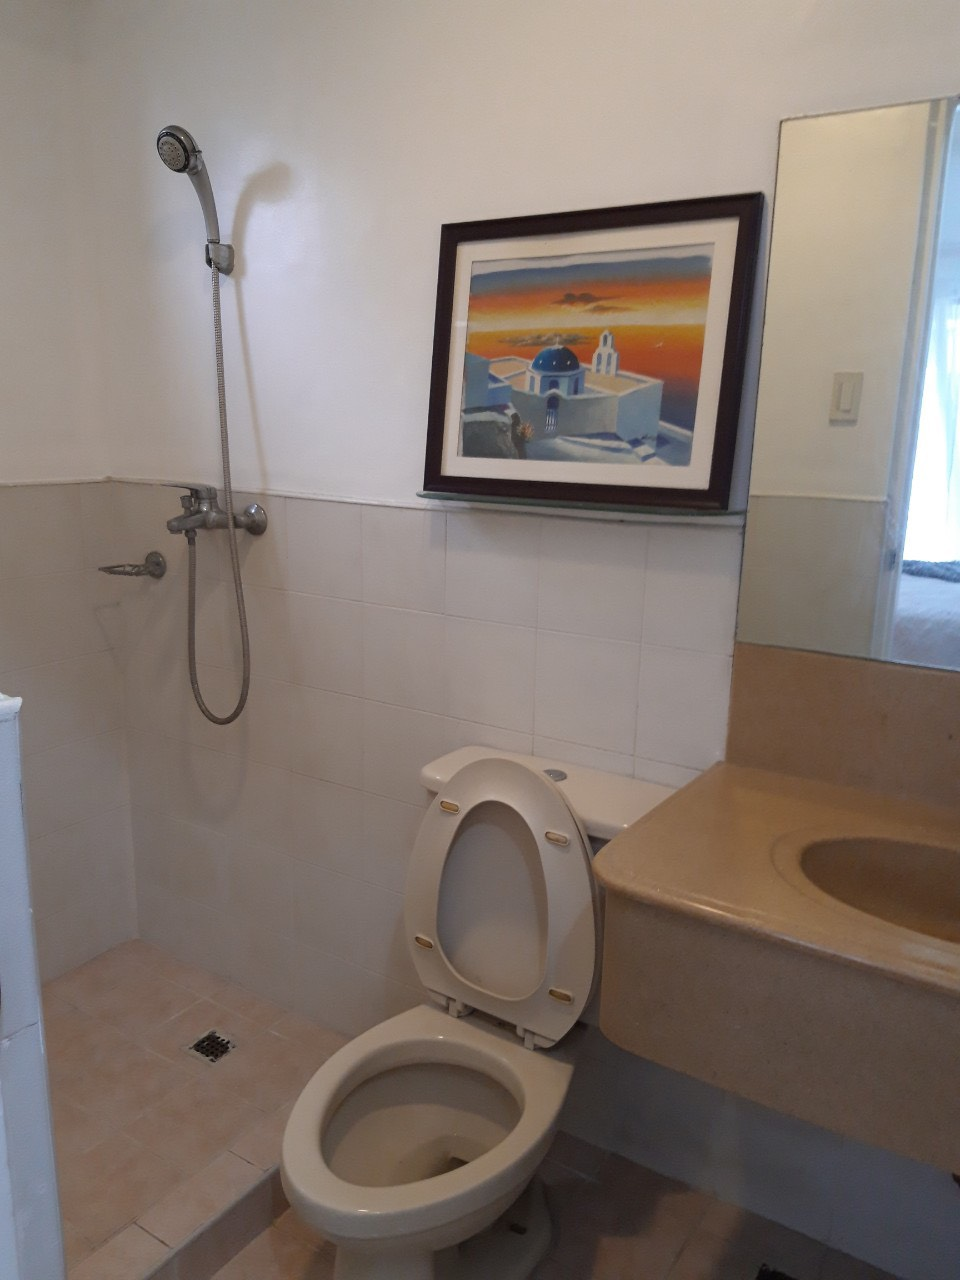 1 Bedroom Condo For Sale, Forbeswood Heights, BGC Bathroom View 2